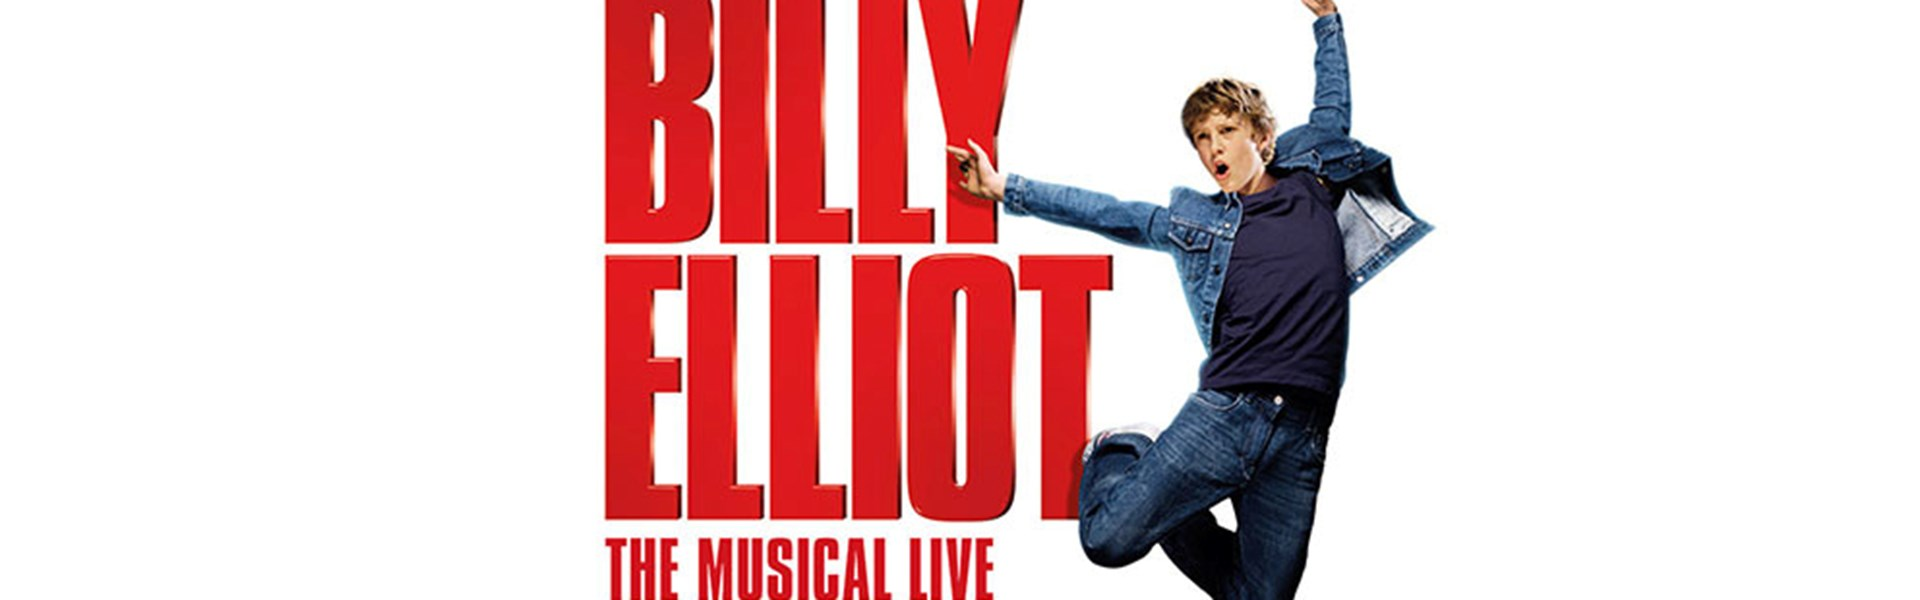 FILM: Billy Elliot The Musical (15)